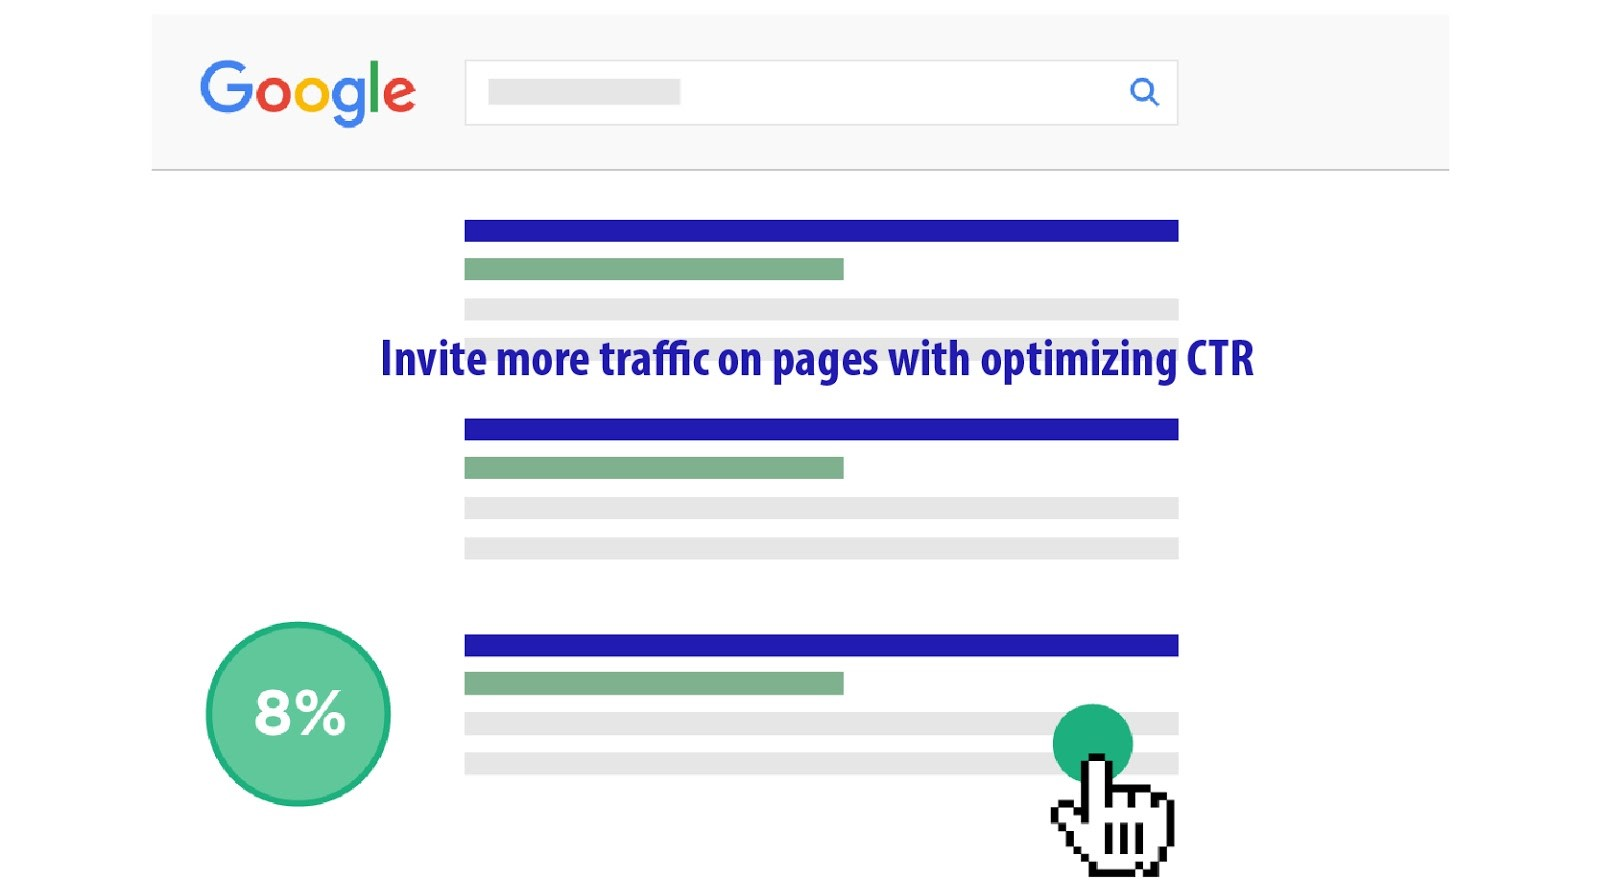 Invite more traffic on pages with optimizing CTR